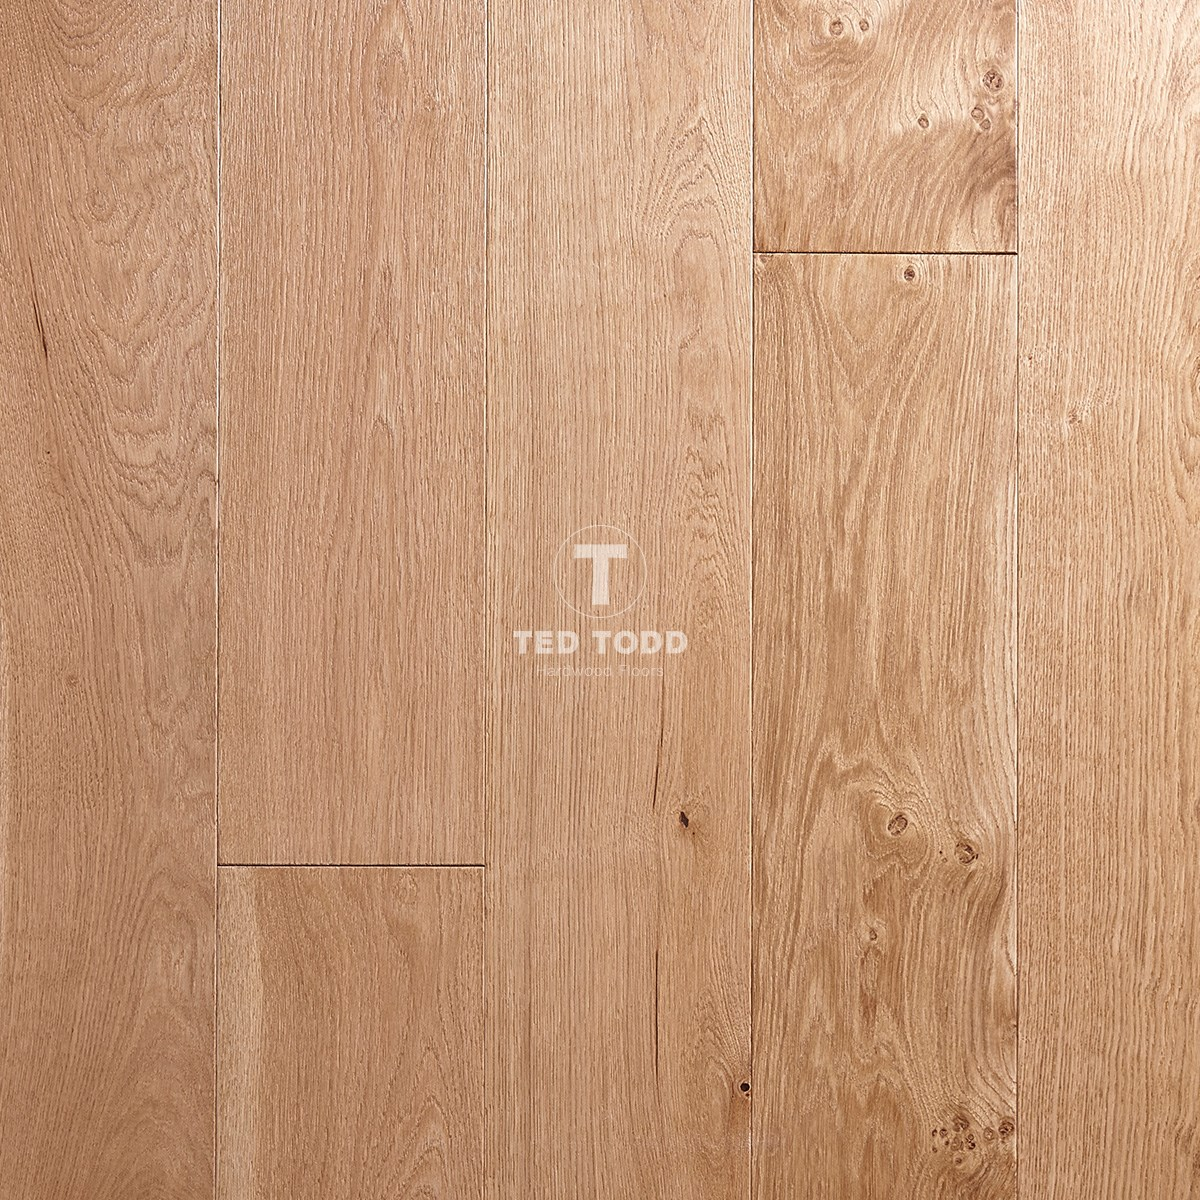 Moccasin Planks Ted Todd Engineered Wood Best At Flooring